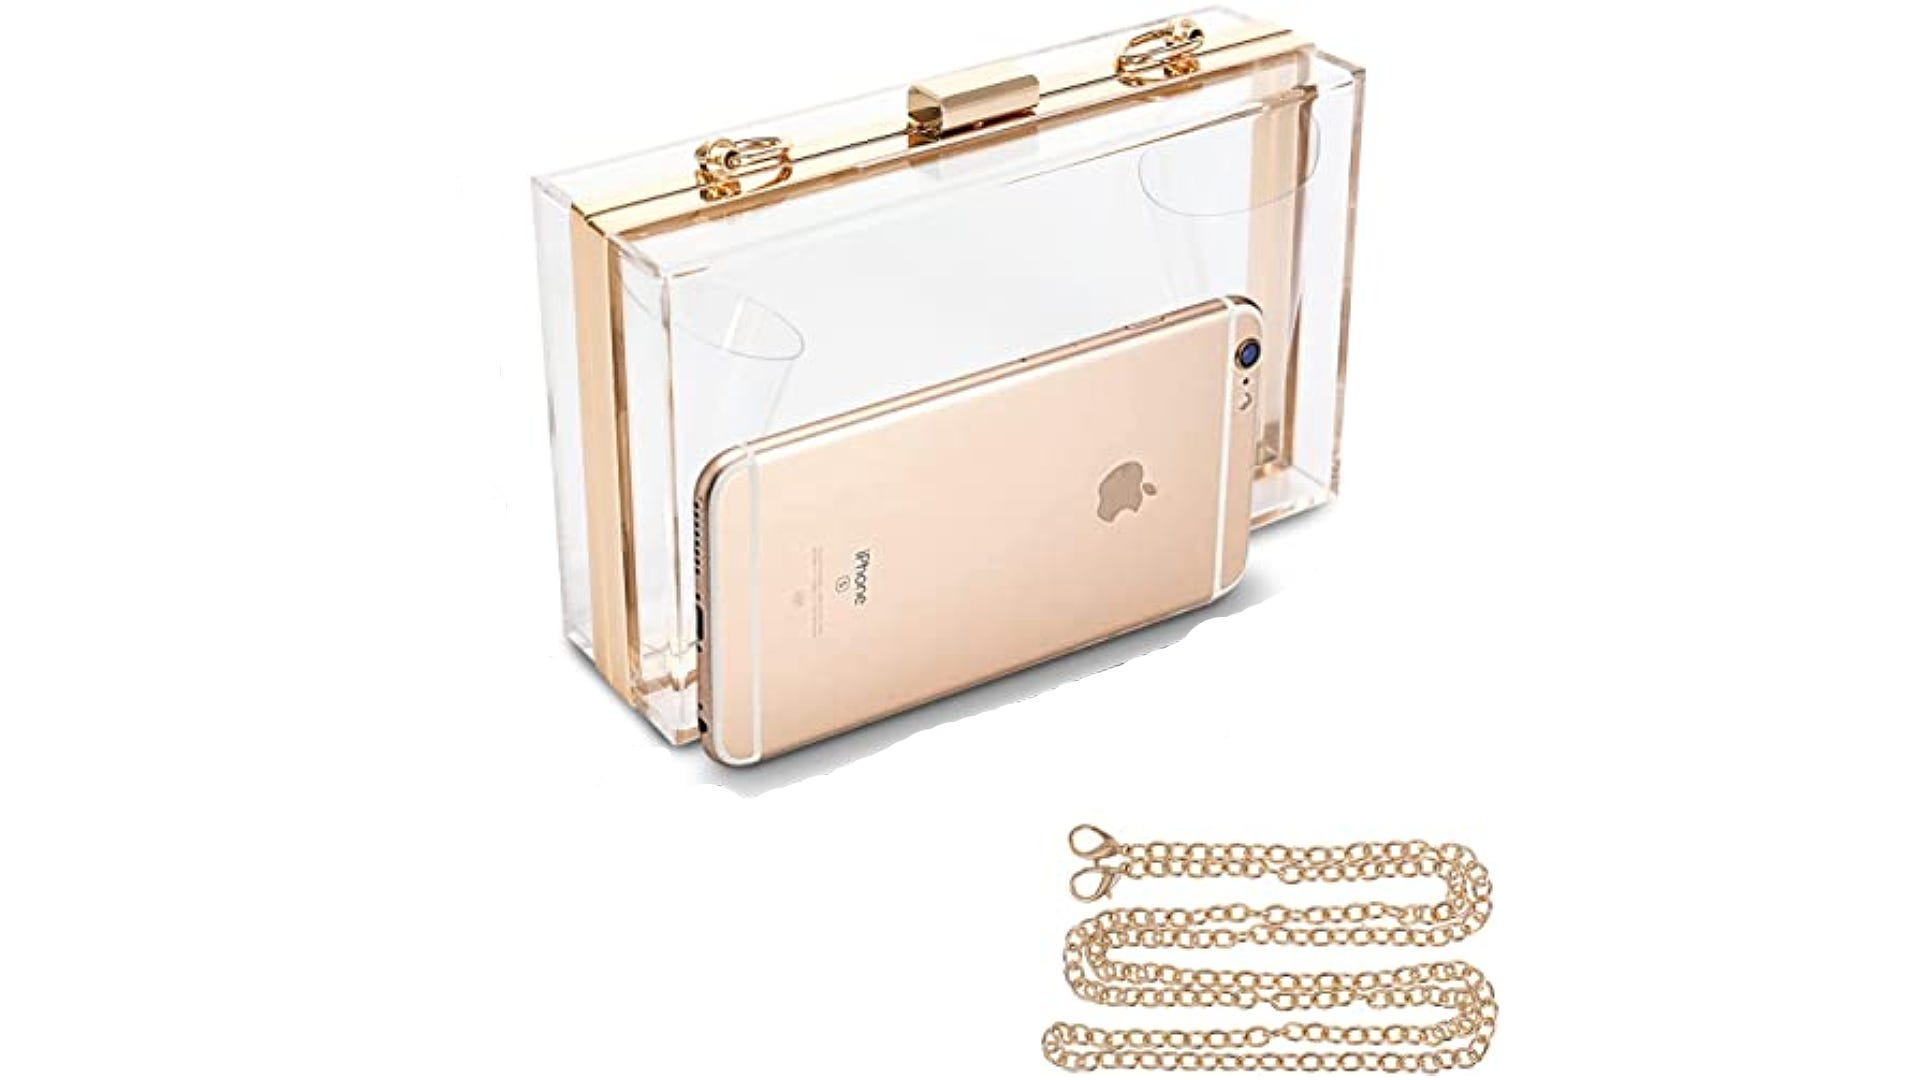 hard-bodied clear clutch bag with gold chain strap beside cellphone